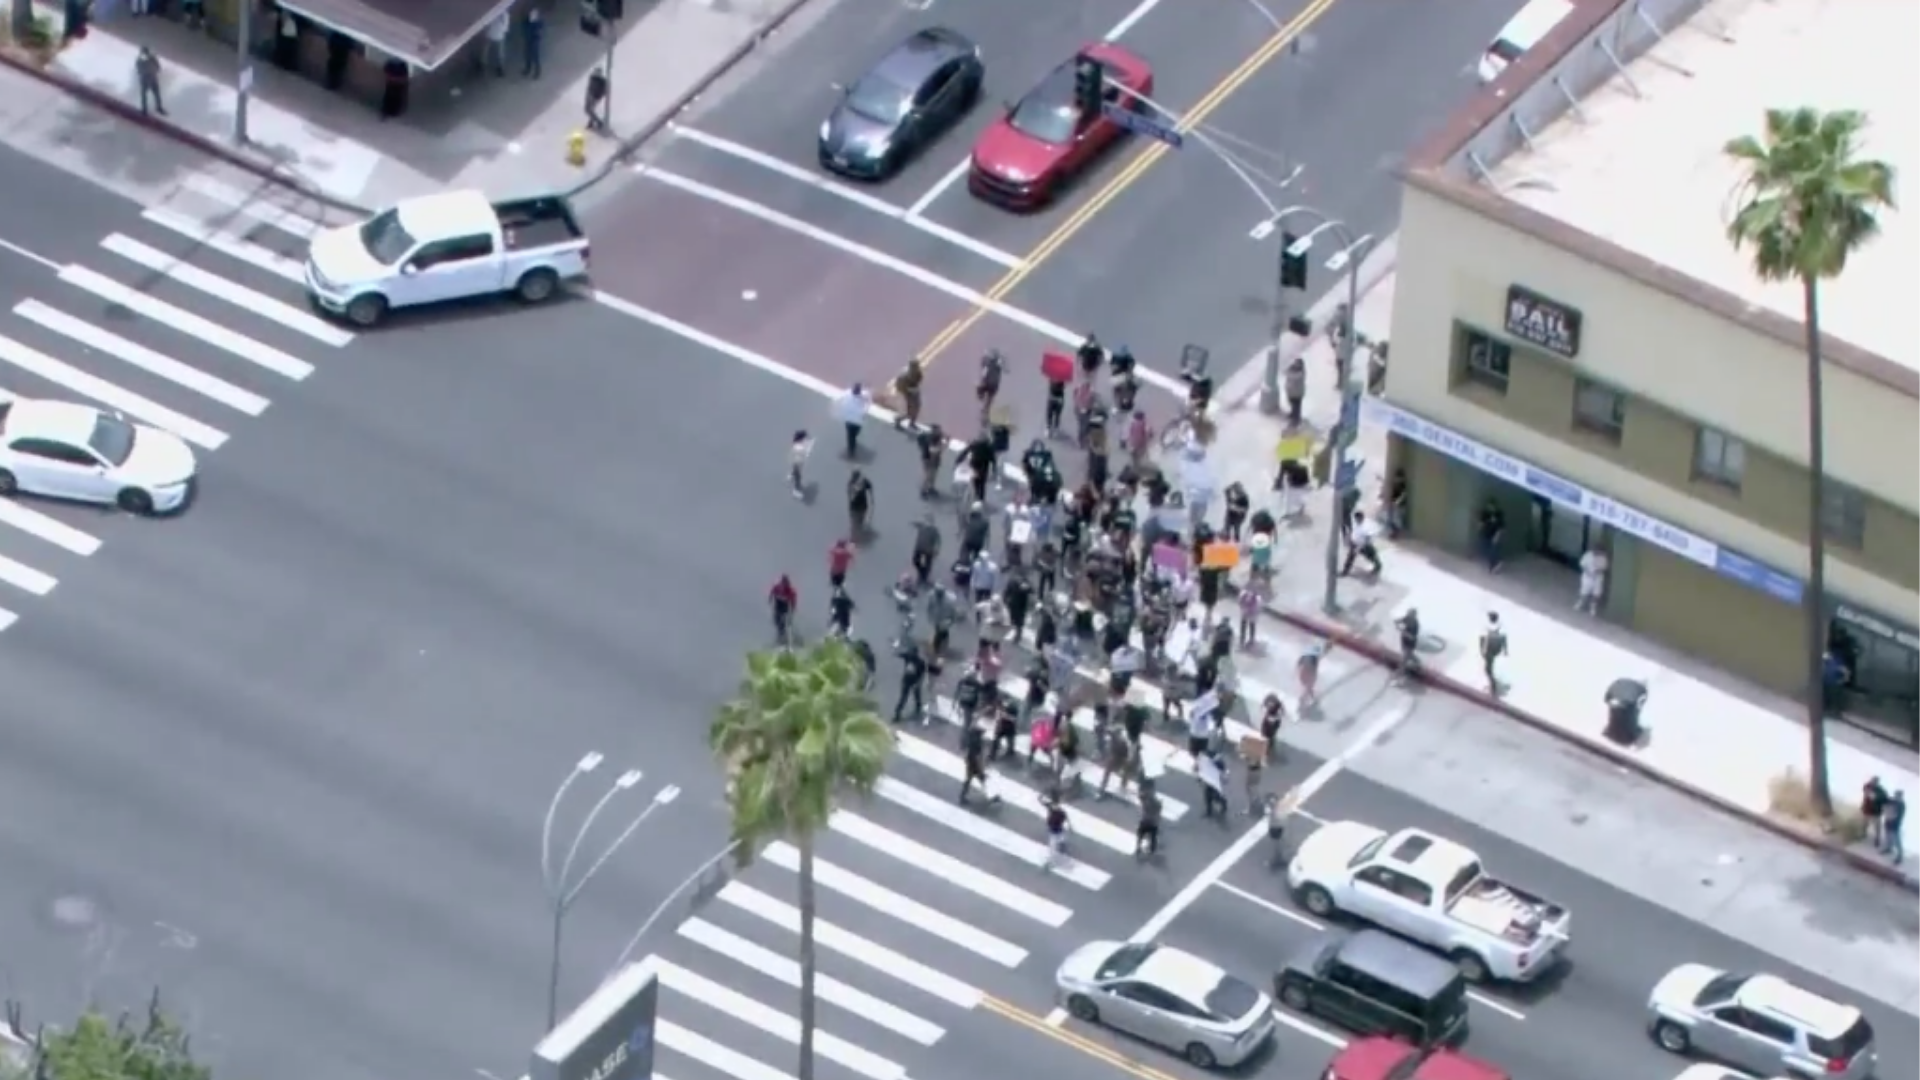 Protesters march on the streets of Van Nuys on June 1, 2020. (Sky5)